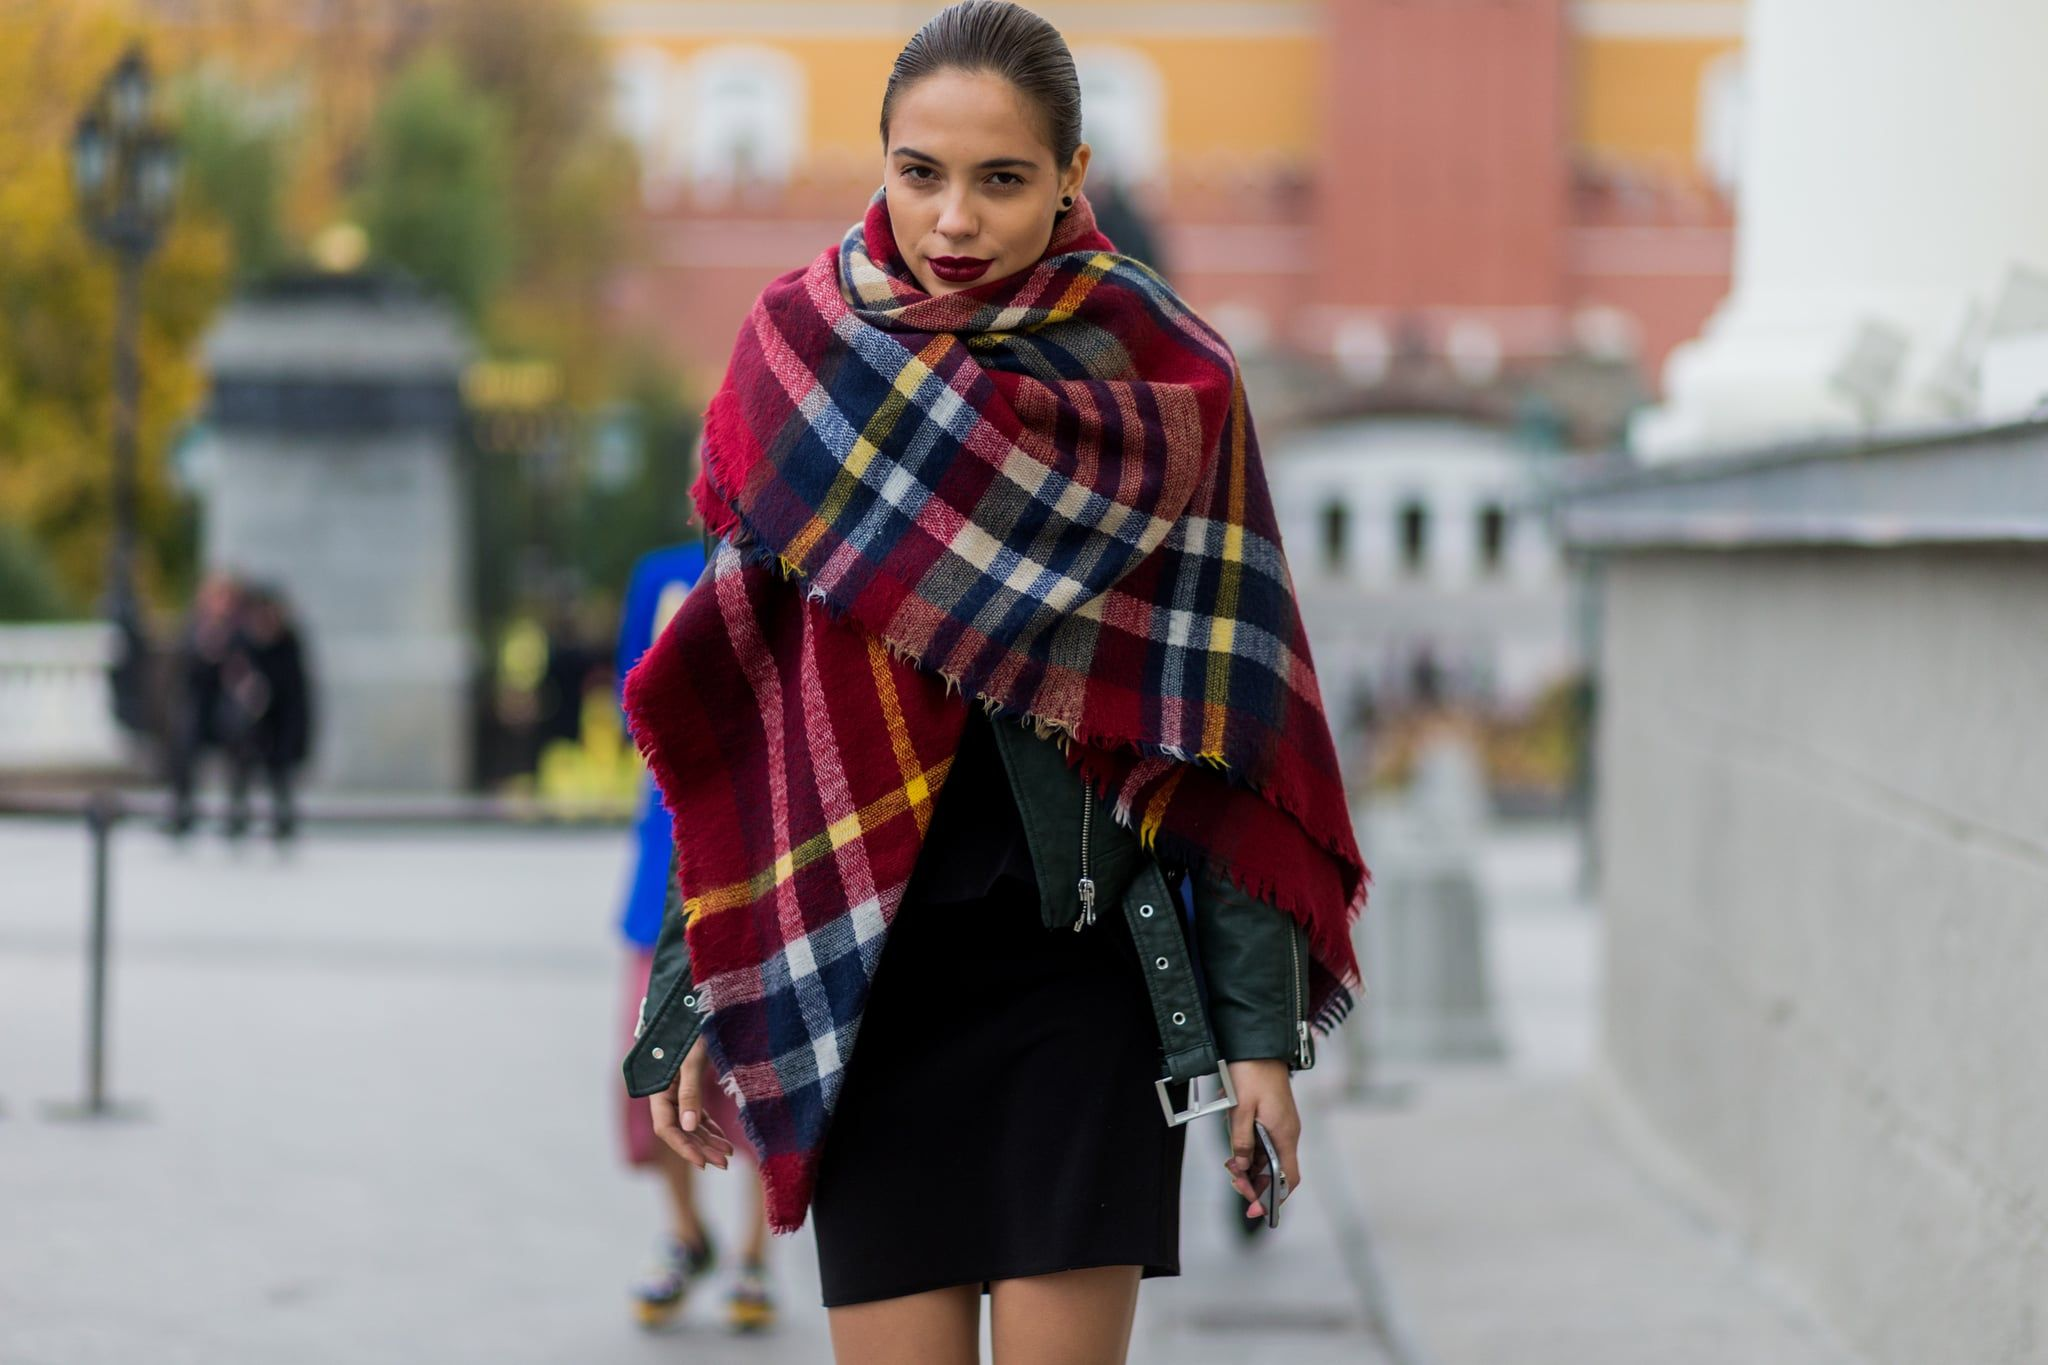 How to Wear a Blanket Scarf How to wear a blanket scarf